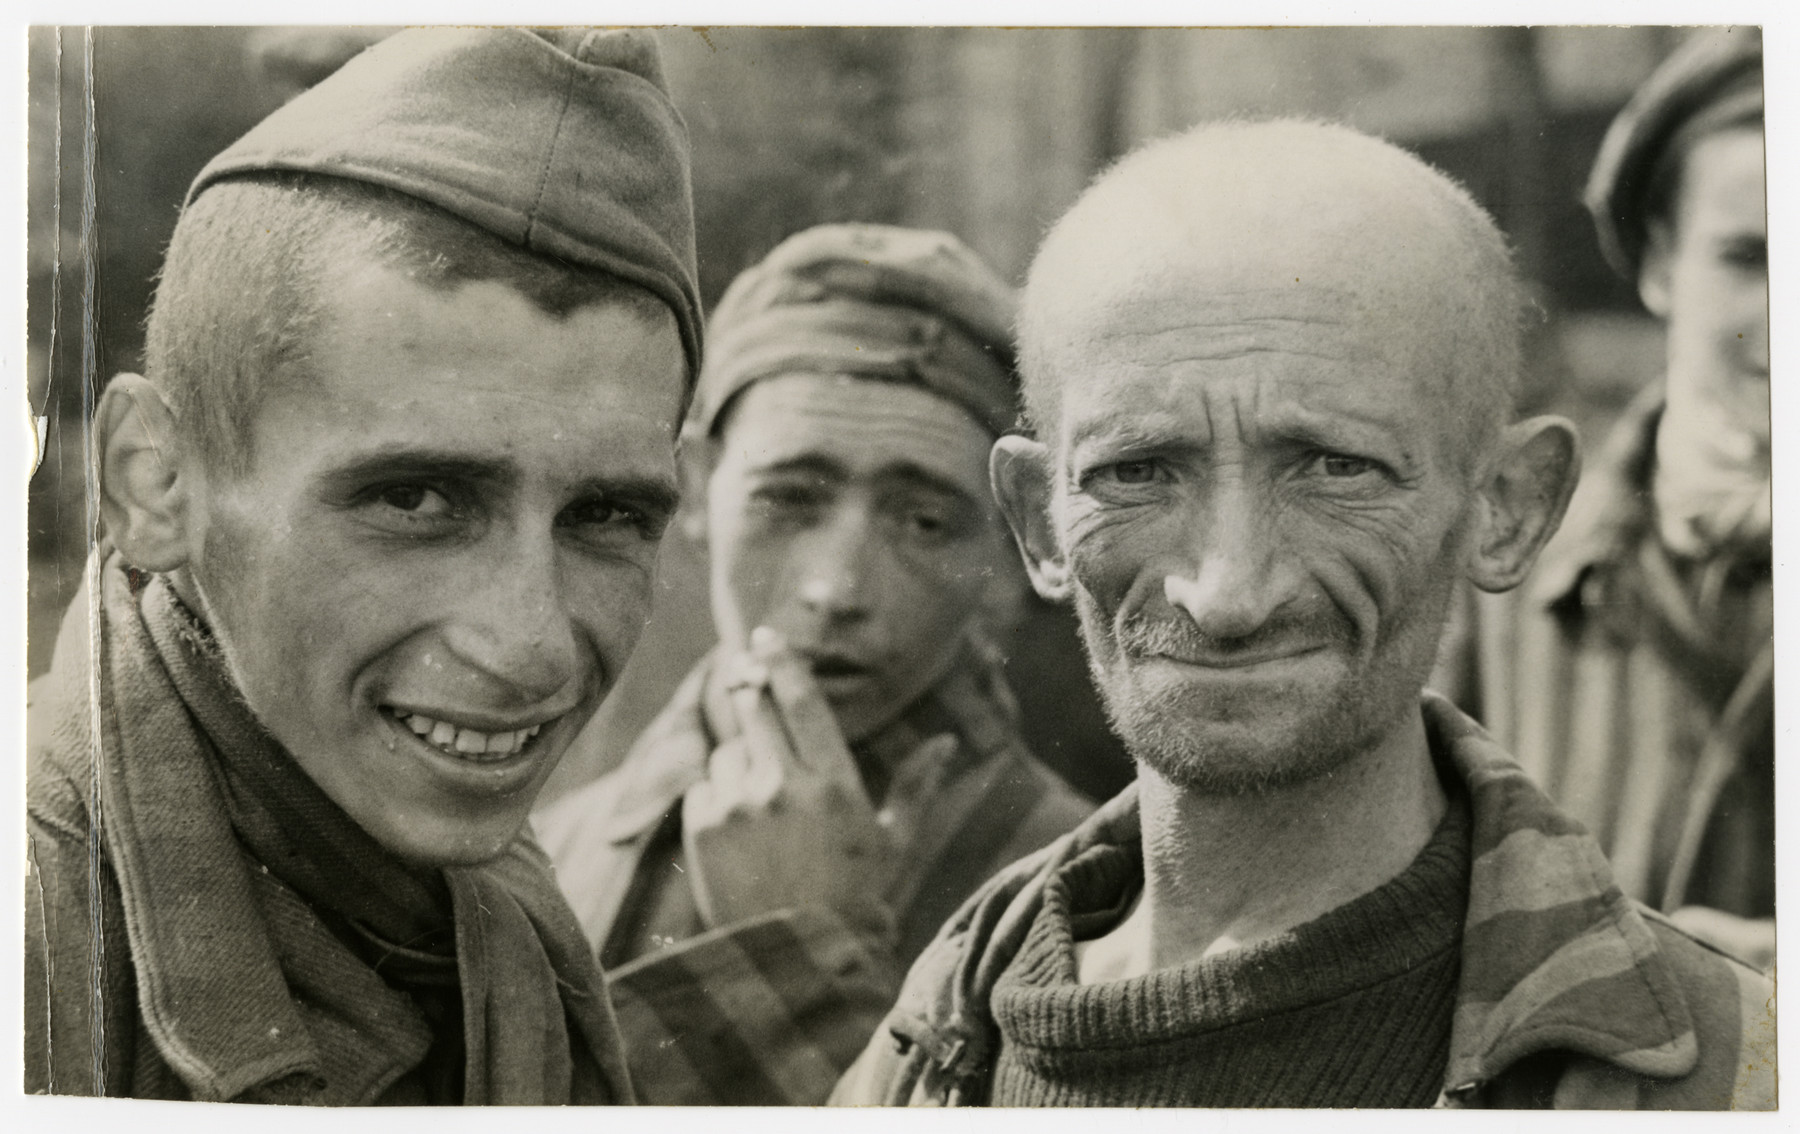 Survivors in Langenstein-Zwieberge, a sub-camp of Buchenwald soon after liberation.